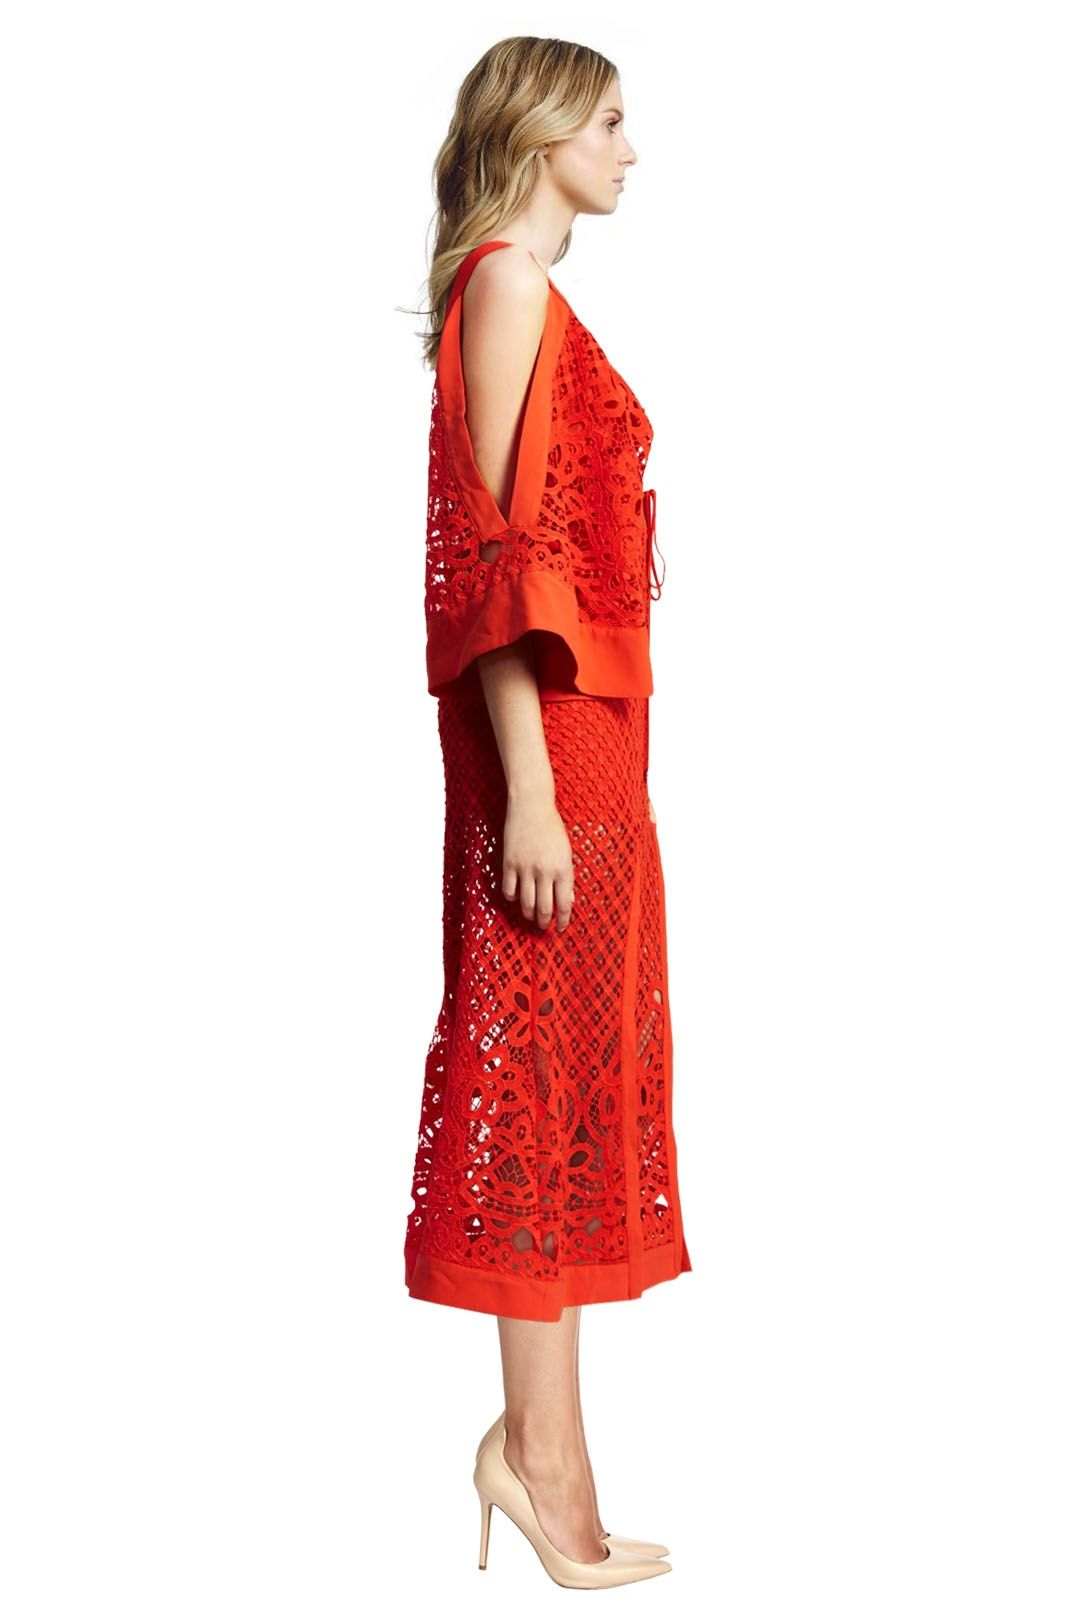 Alice McCall - Break my Love Dress - Red - Side